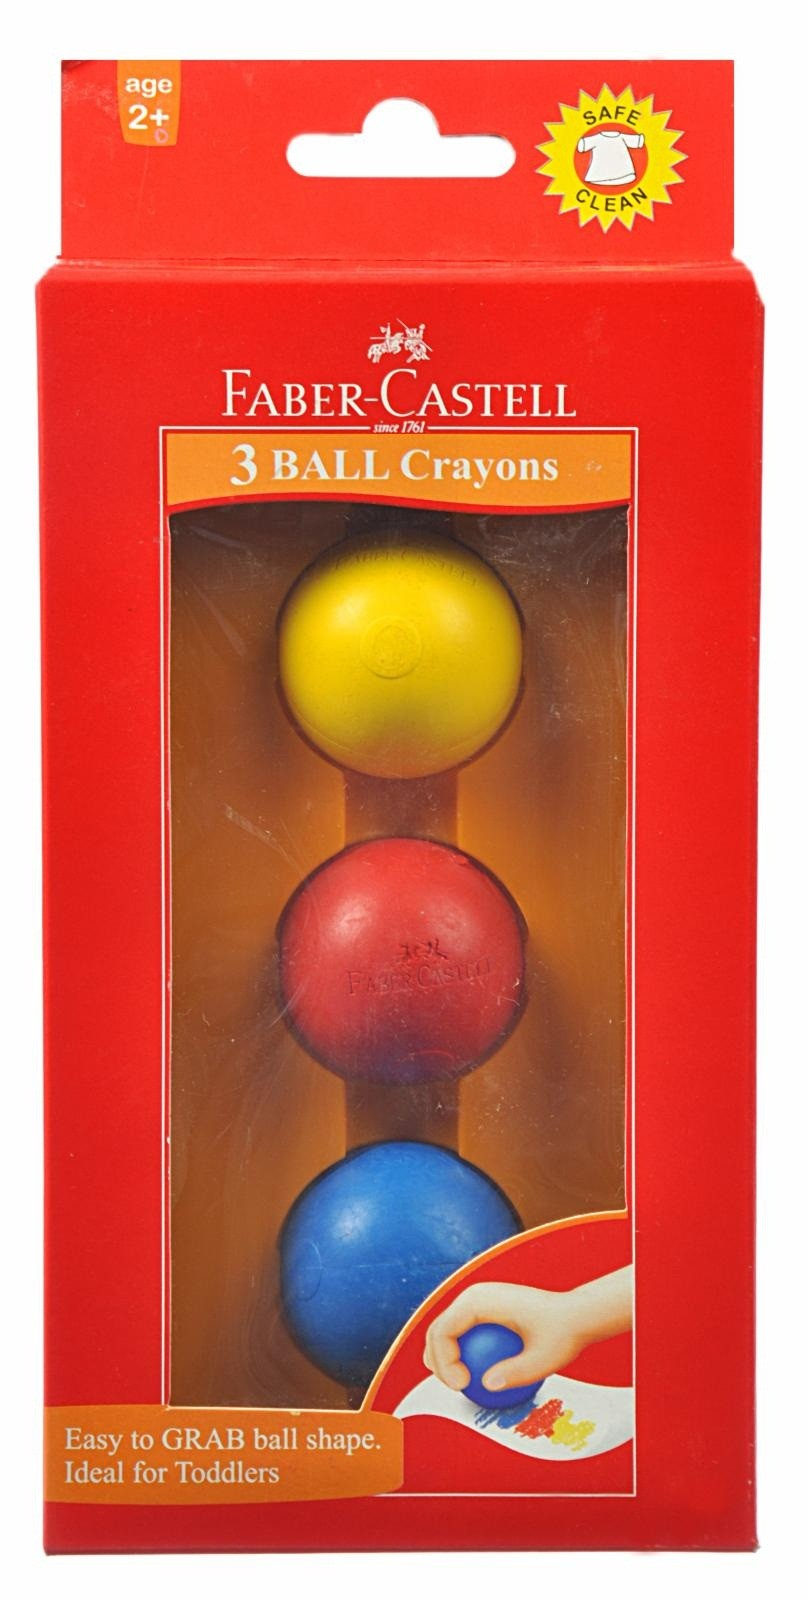 Faber Castell Ball Shaped Grab Crayons - Pack of 3